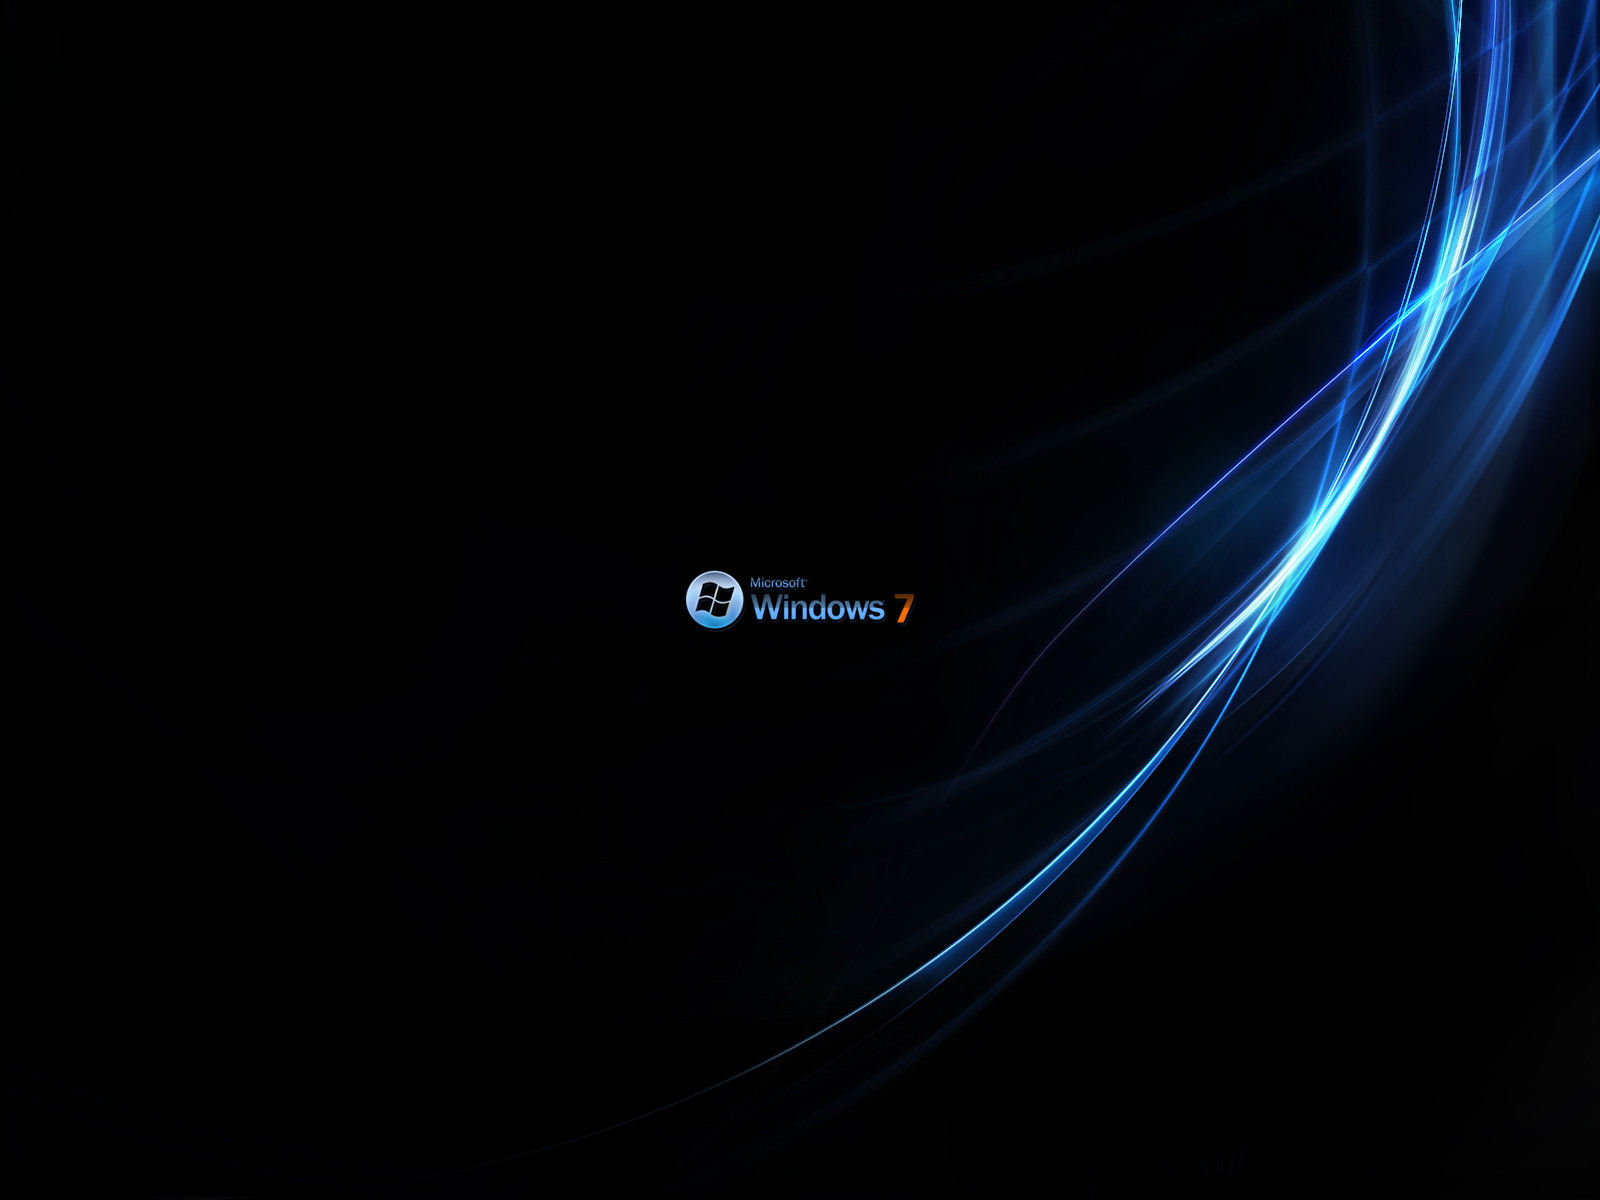 Windows 7 HD Wallpapers1920 X1080 submited images 1600x1200